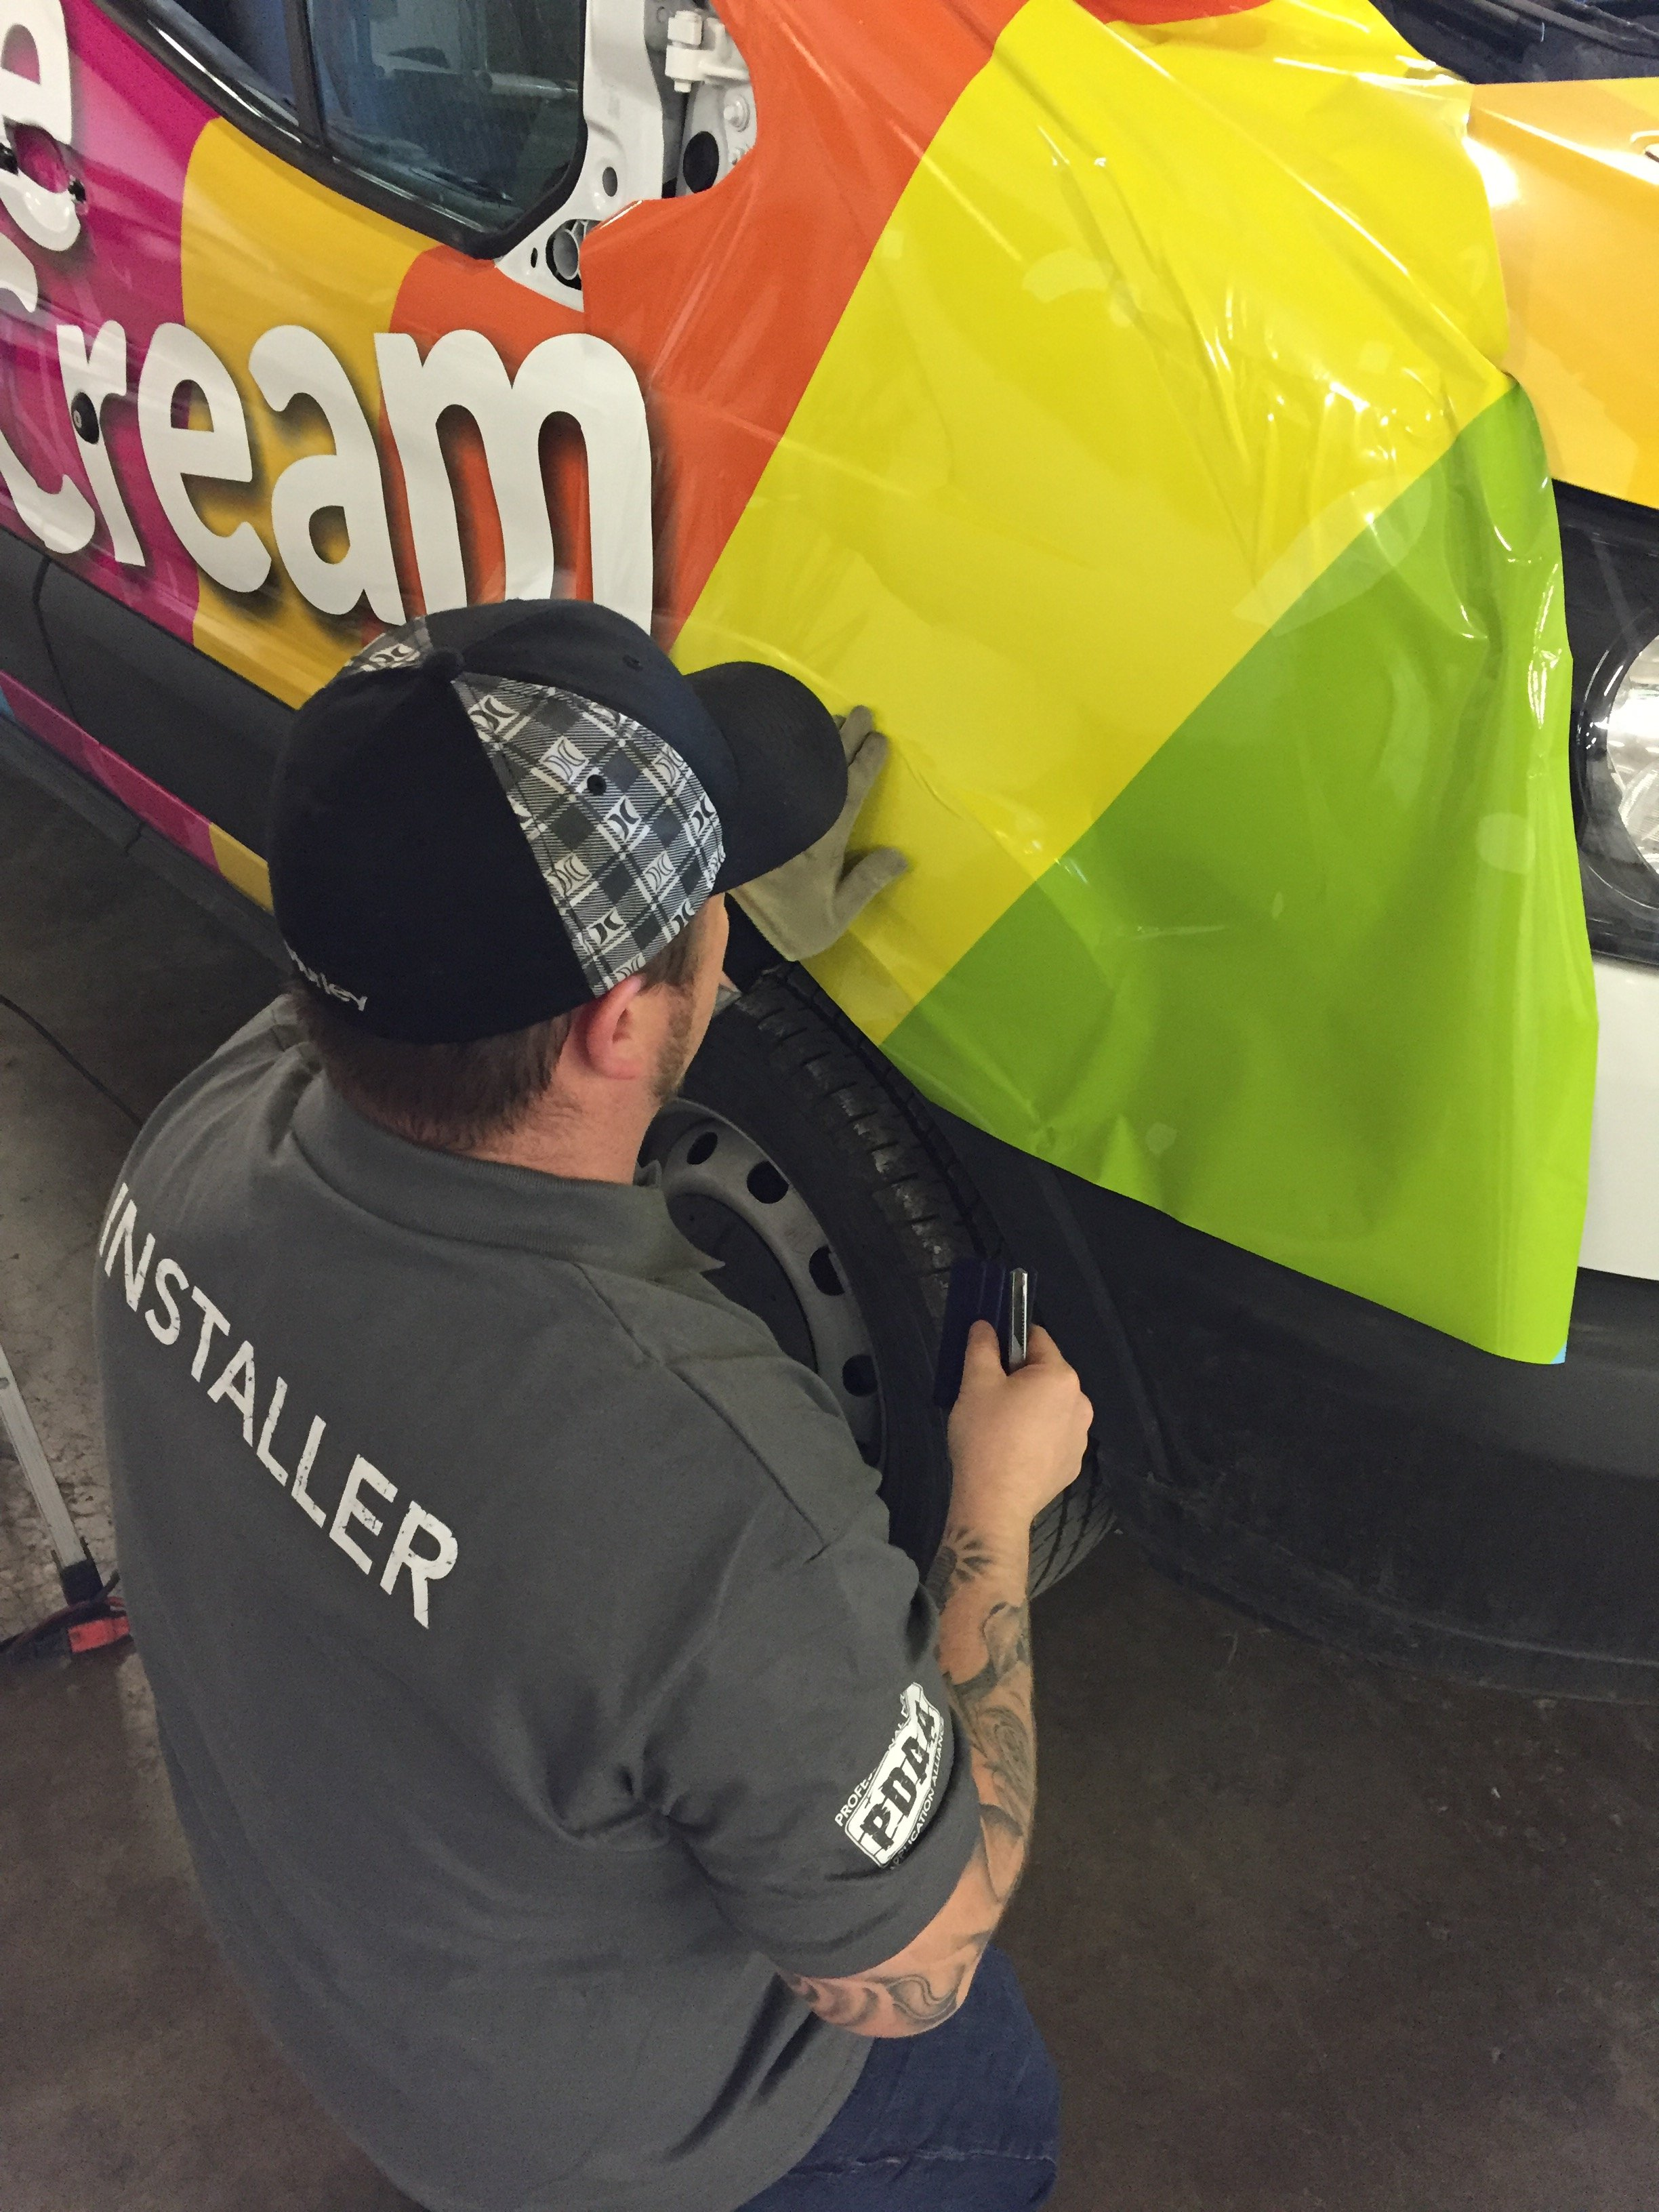 VMS vehicle wrap installer